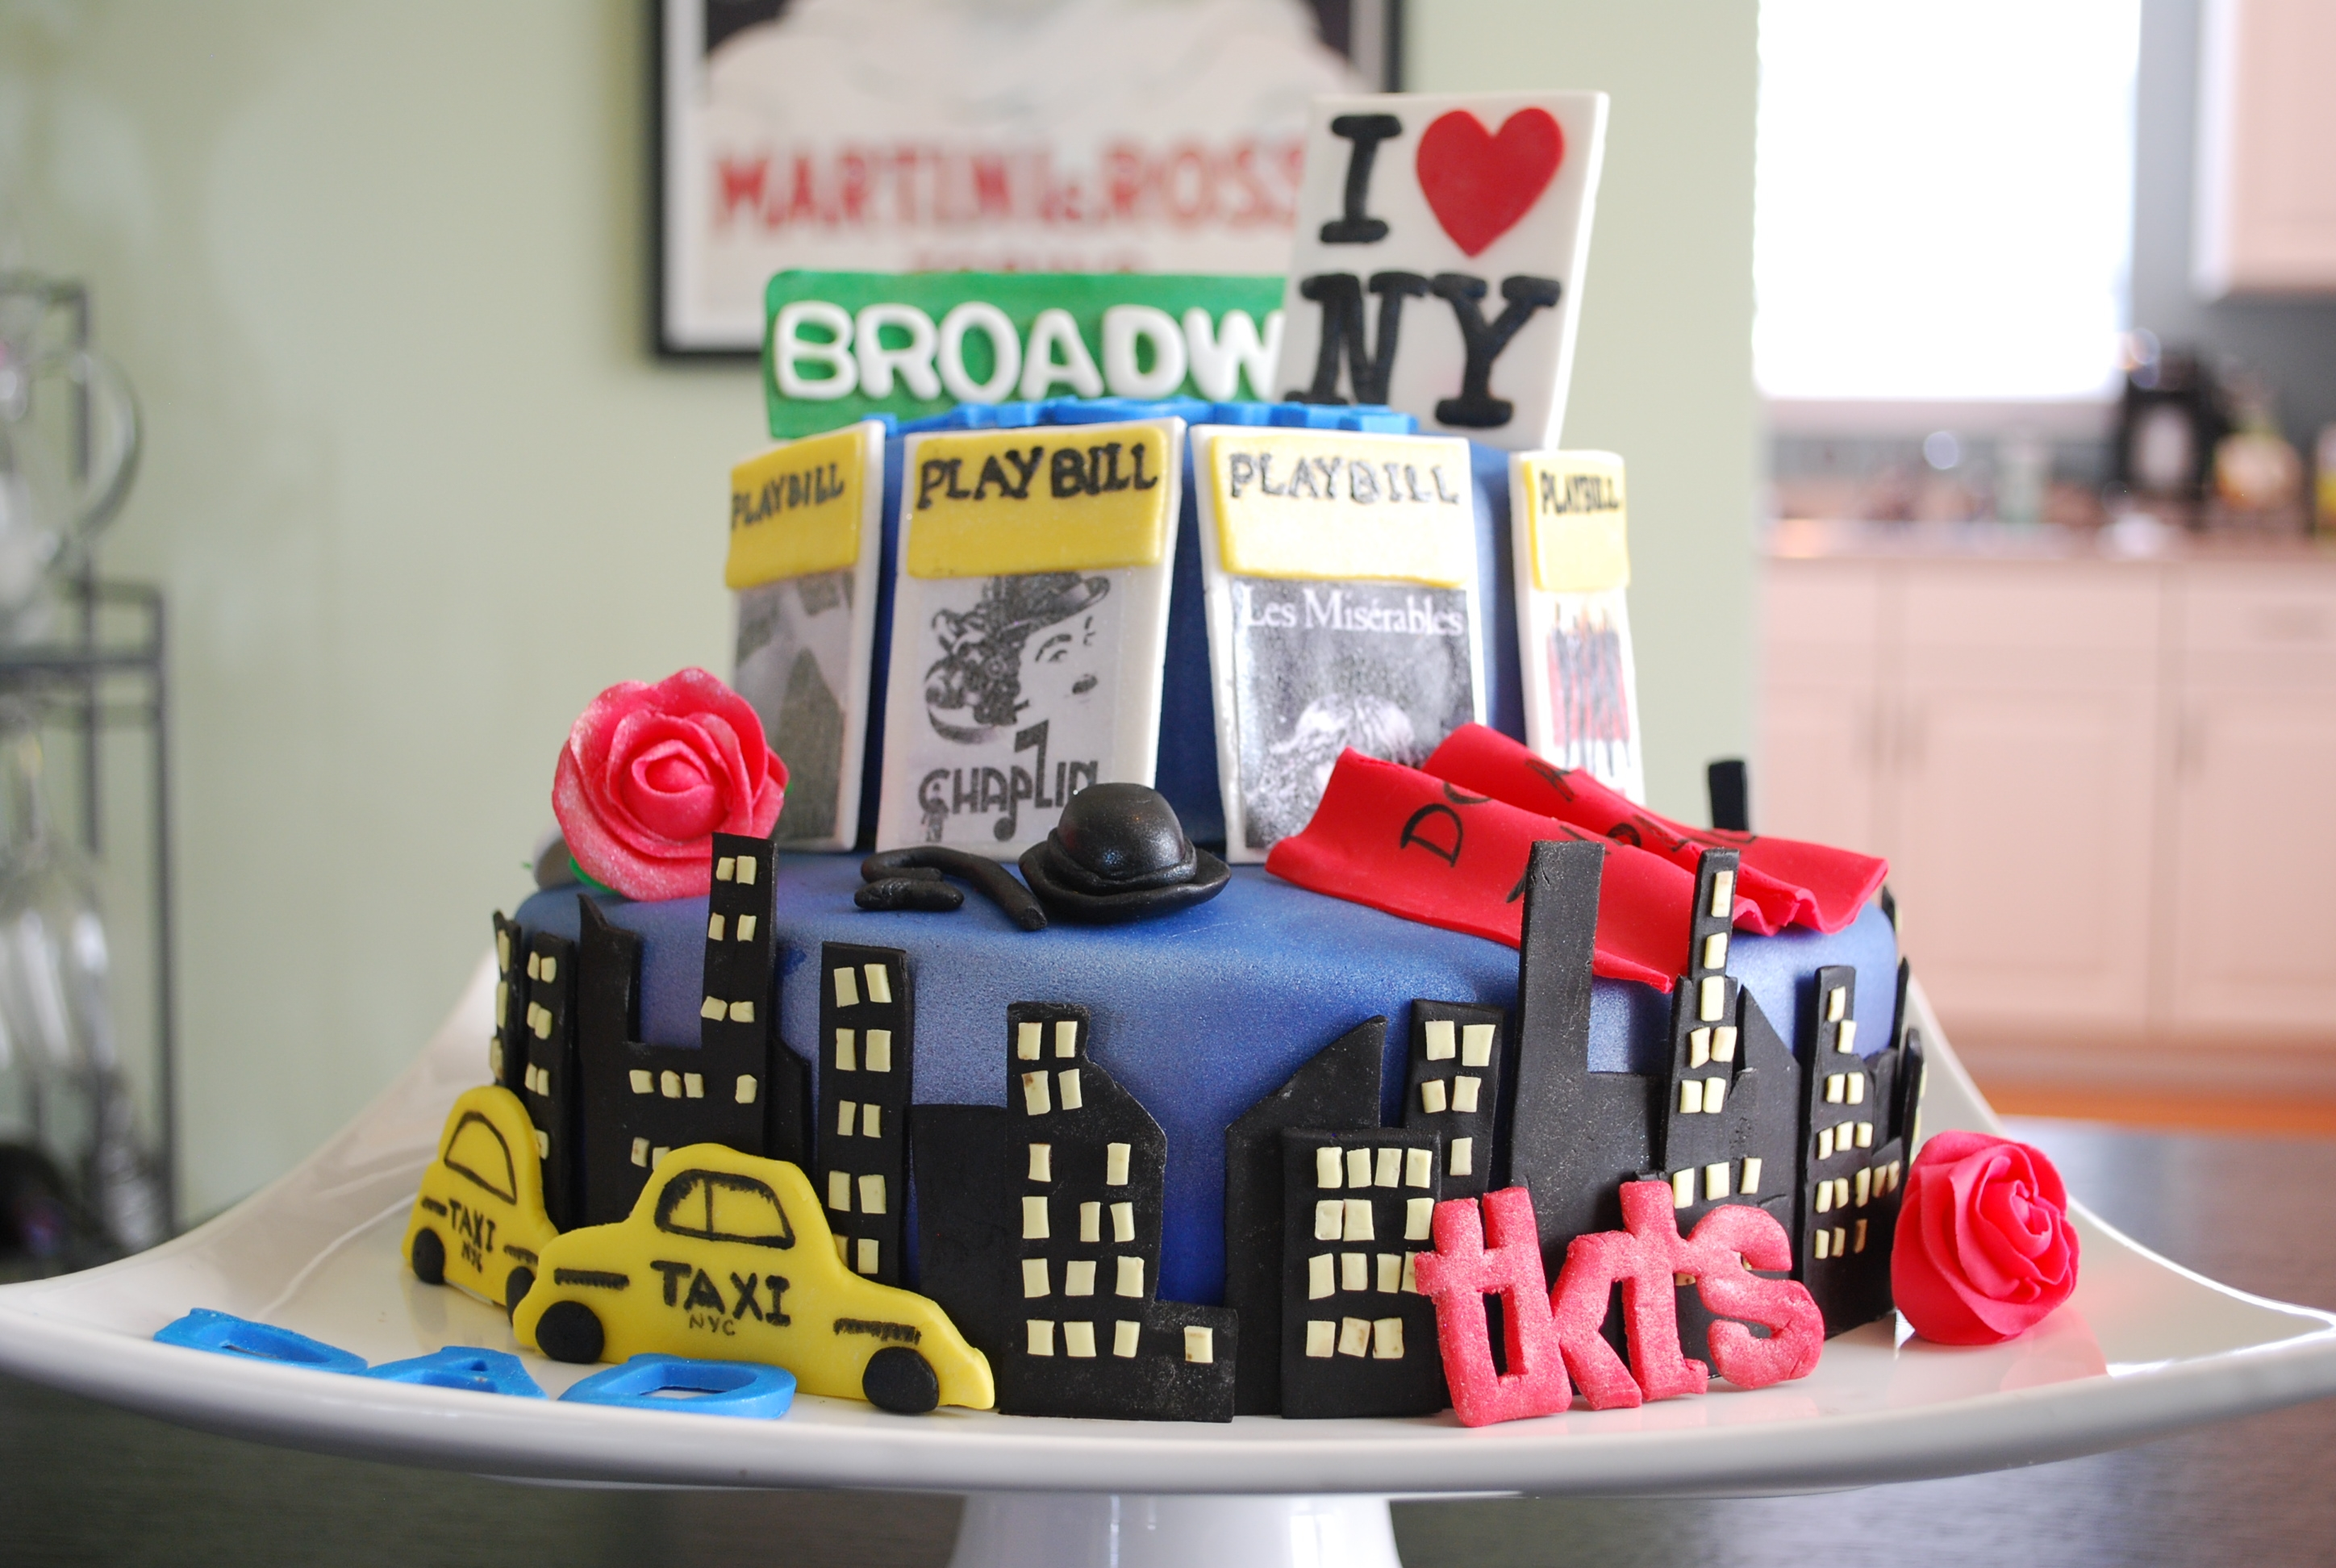 Broadway Cake  70th birthday cake for my dad who loves Broadway! Incorporated his favorite shows: Les Mis, Phantom of the Opera, Chaplin, and Jersey Boys...